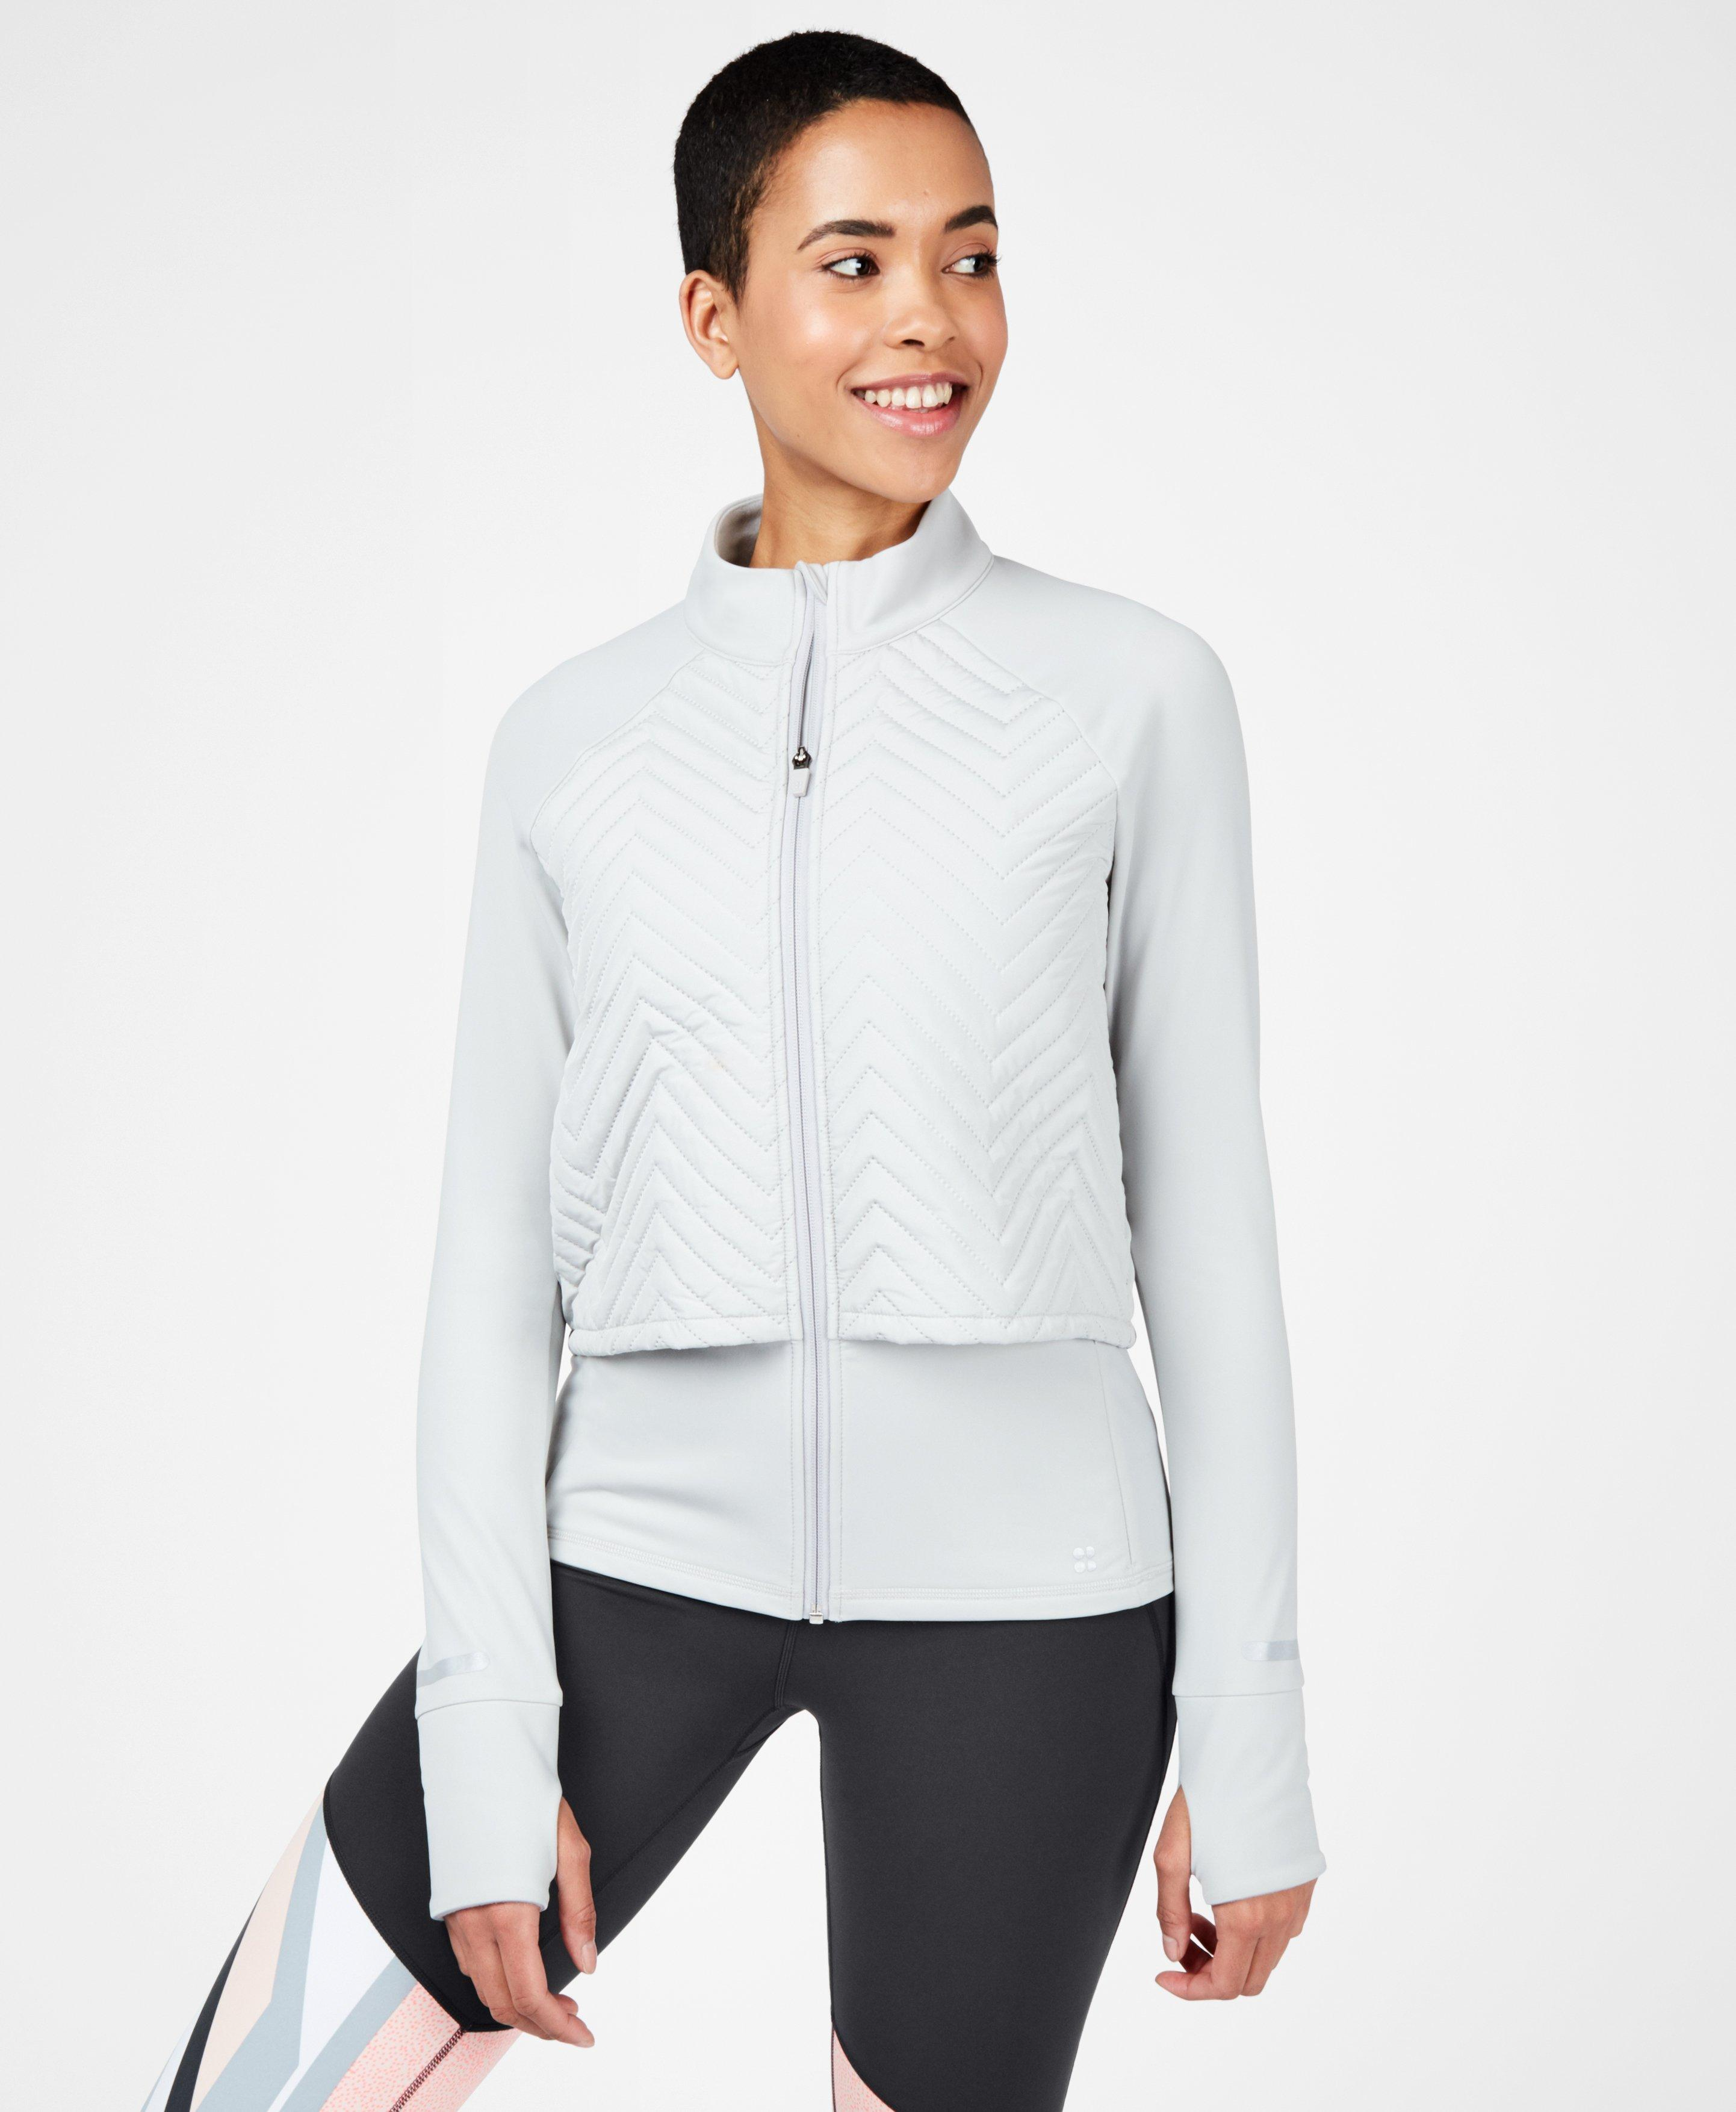 Our famous Fast Track Running Jacket just got even better with lightweight thermal padding and a water resistant finish. Ideal for winter workouts, the breathable fabric will keep you warm AND dry as you run and train outdoors. With a long back hem that covers the bum for running and cycling.